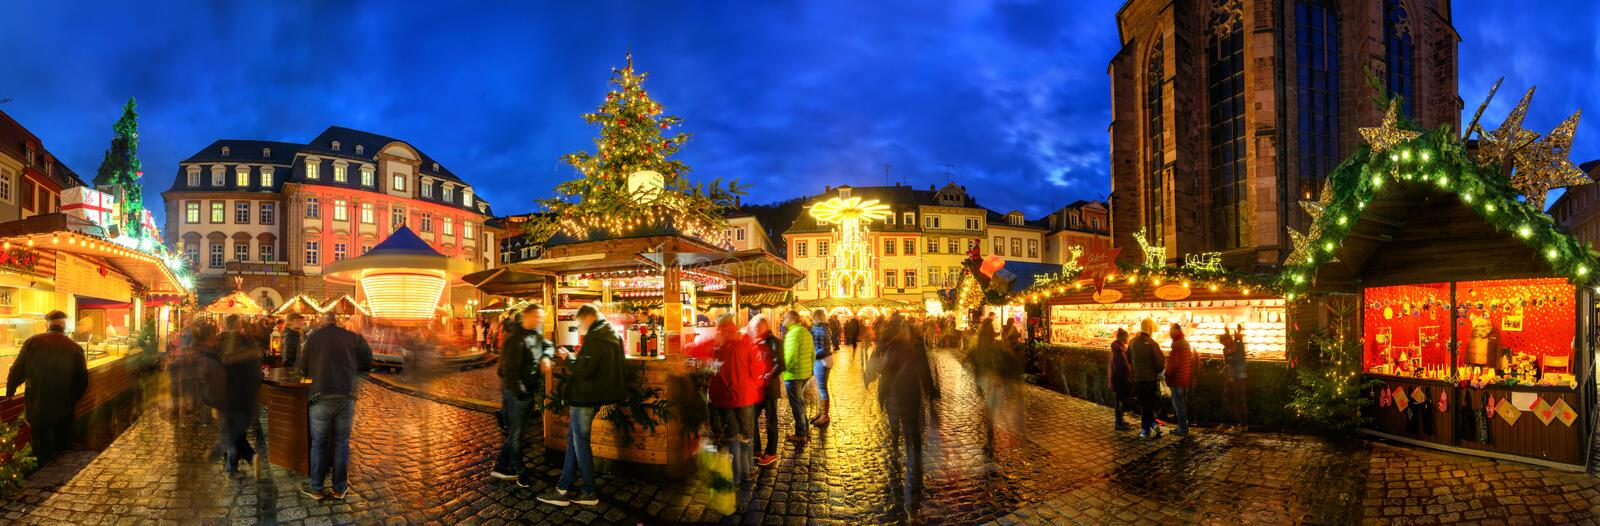 Christmas market in Heidelberg, Germany. A panorama shot at dusk showing illuminated kiosks, architecture and blurred people royalty free stock photography